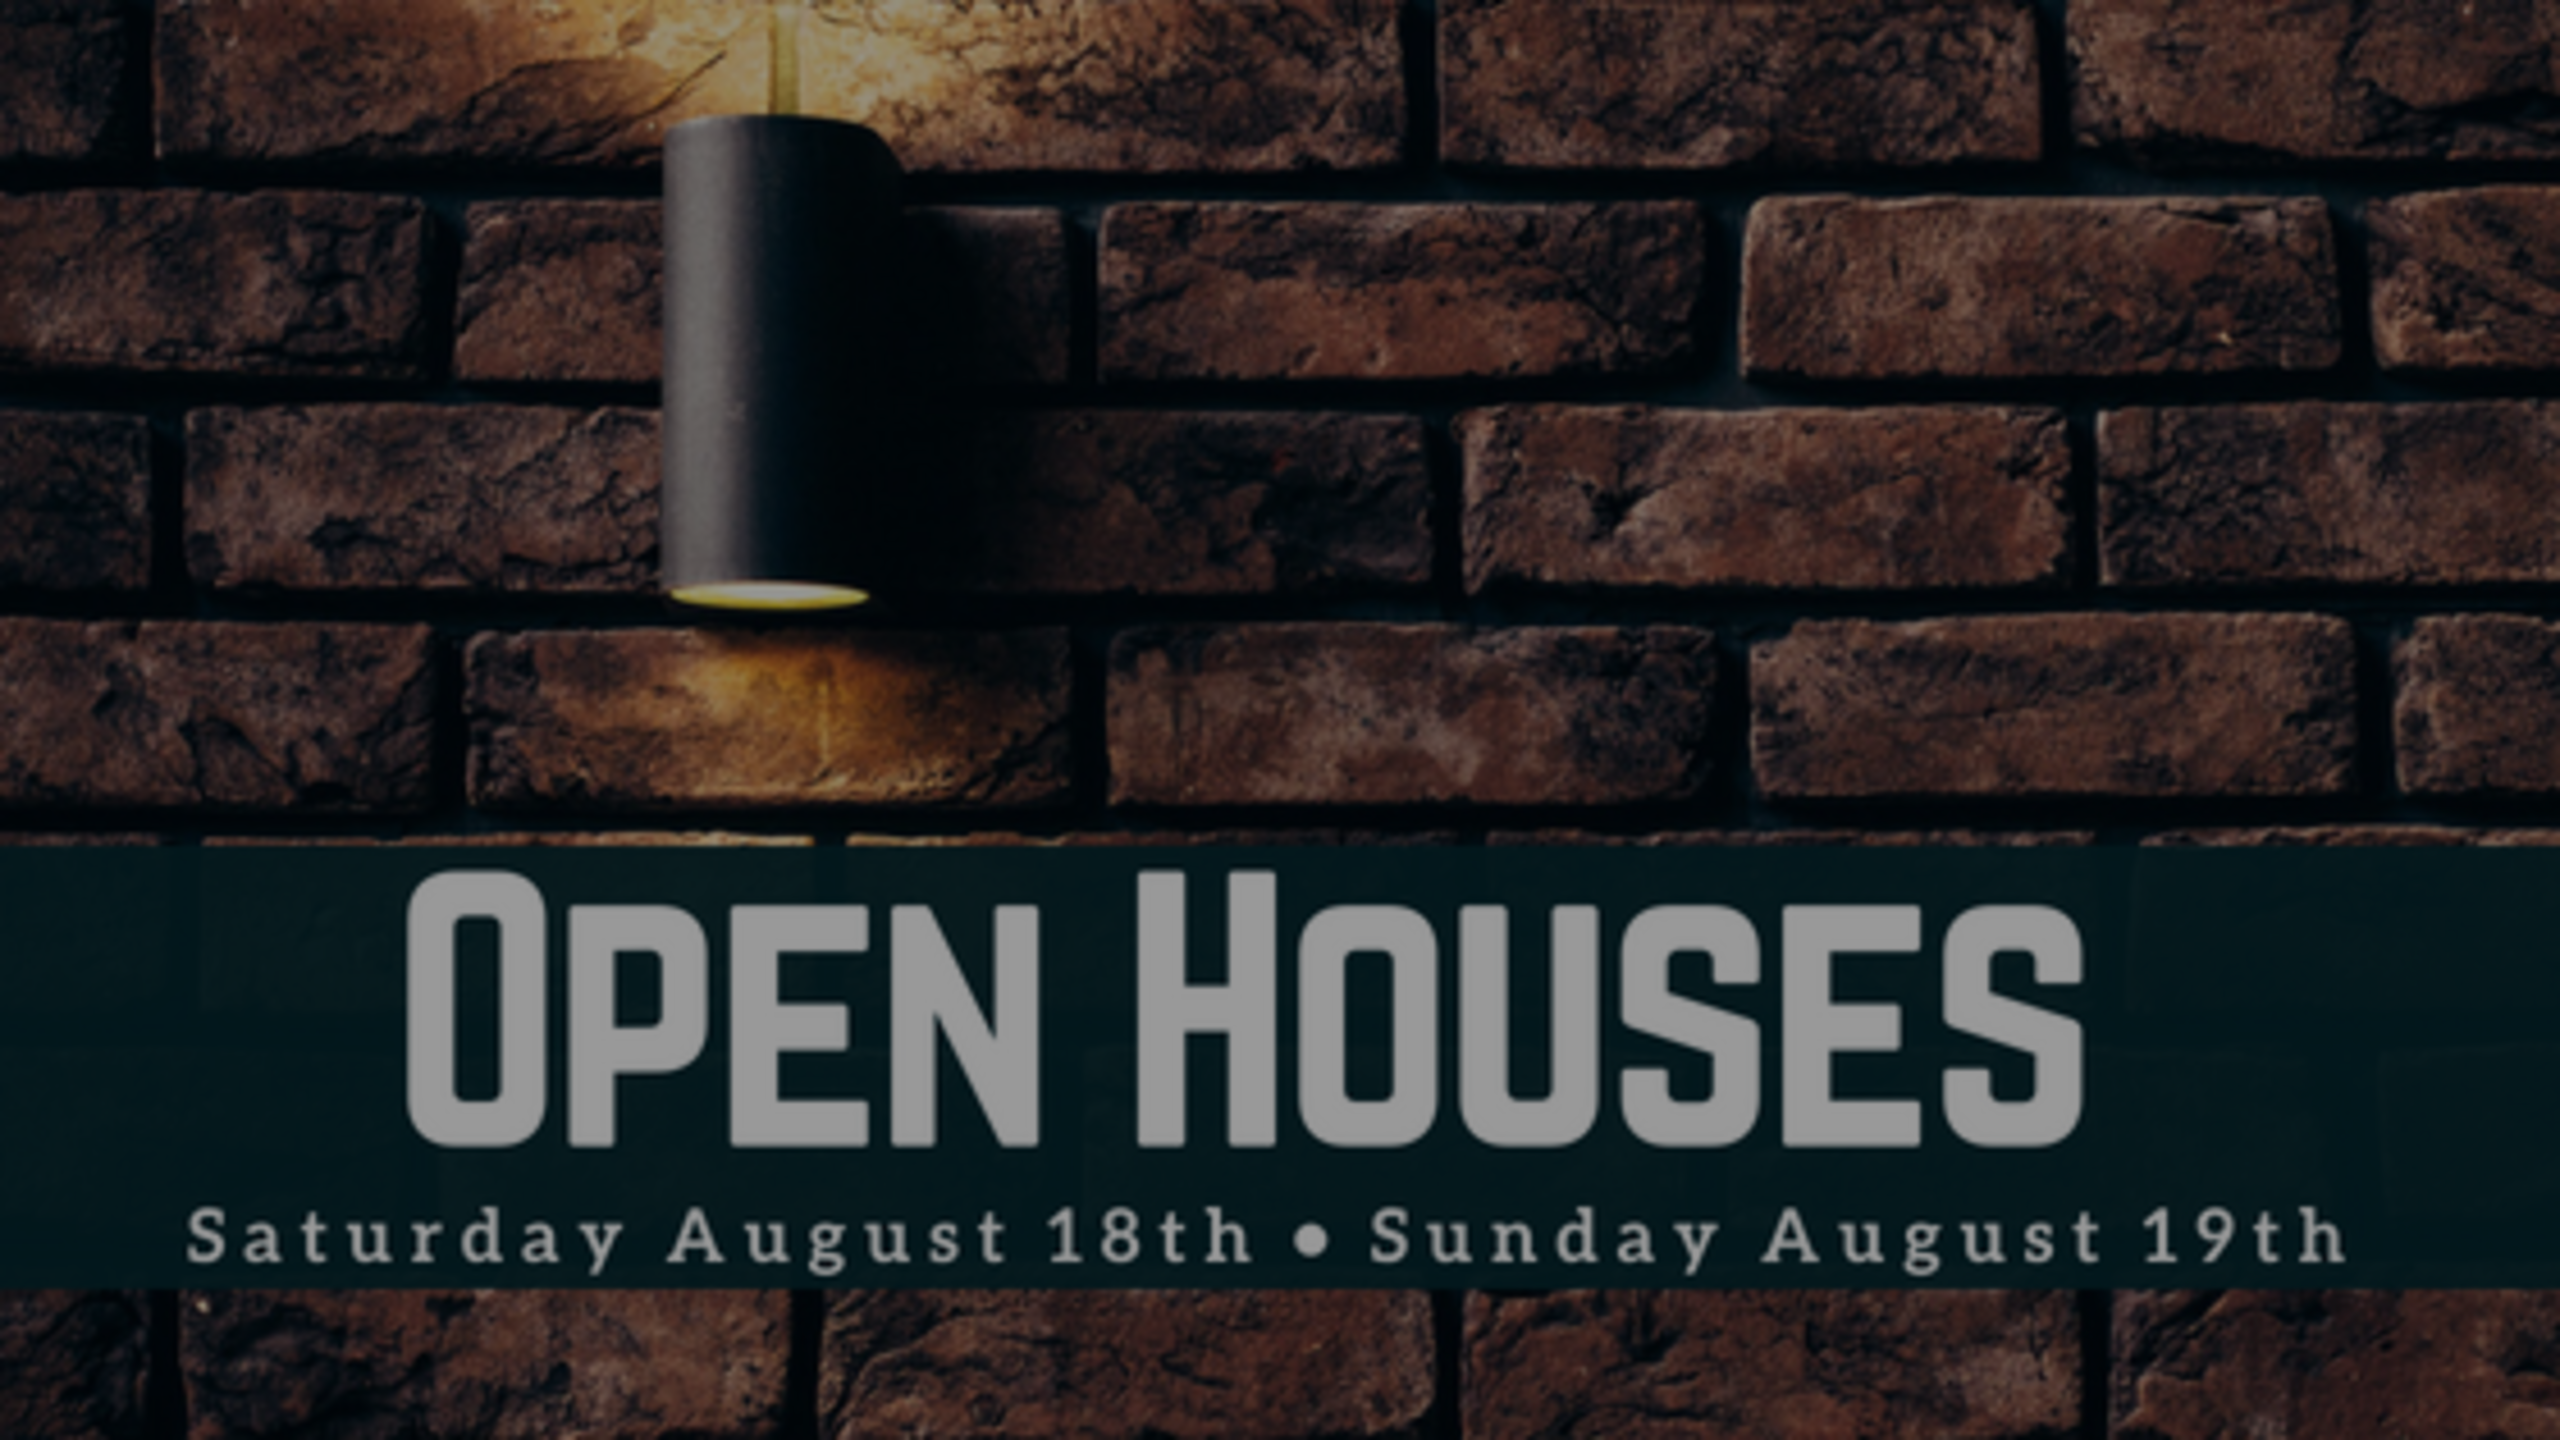 Our Open Houses: Weekend of 8/18 – 8/19